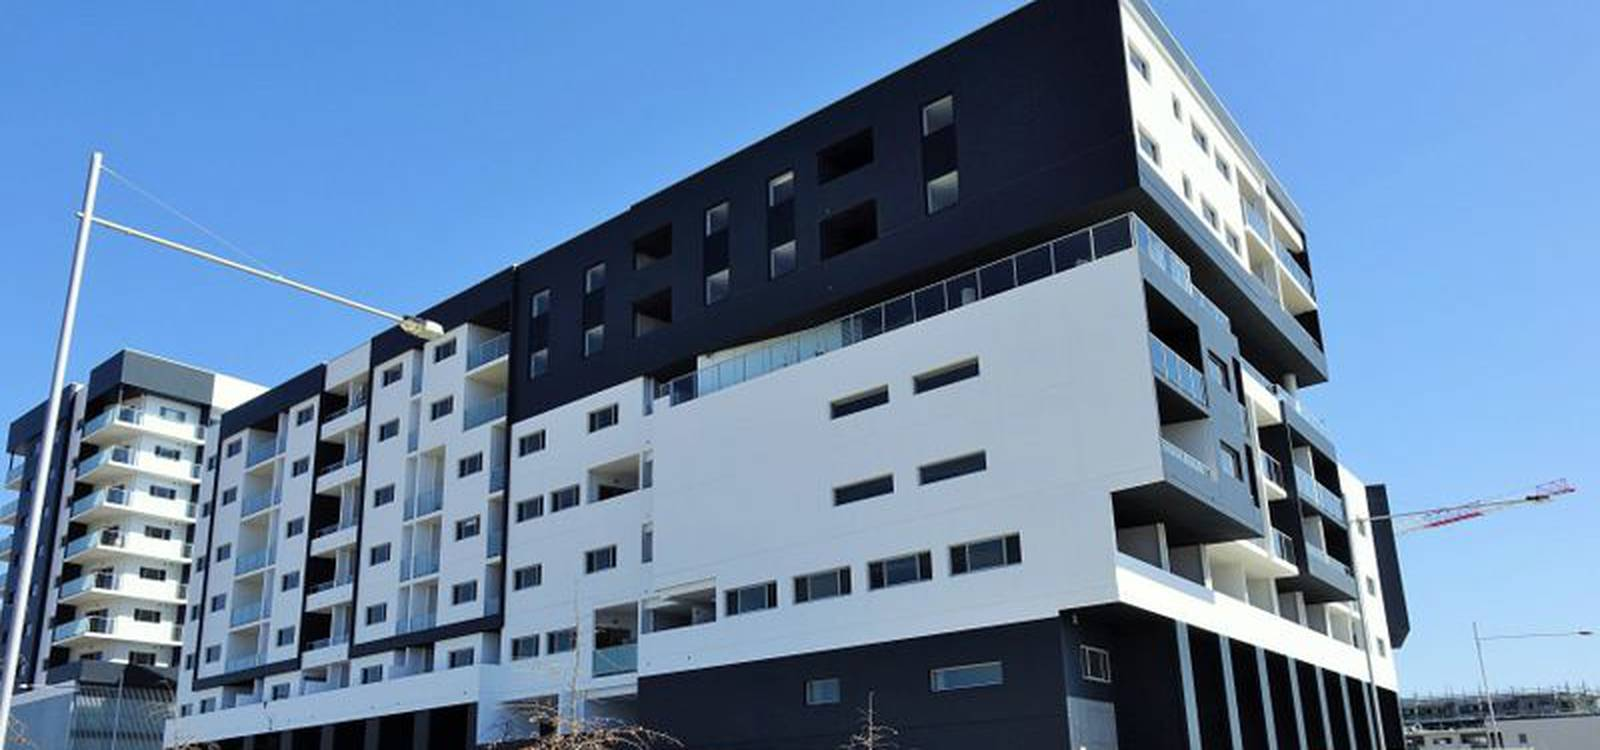 173/35 Oakden Street GREENWAY, ACT 2900 - photo 1